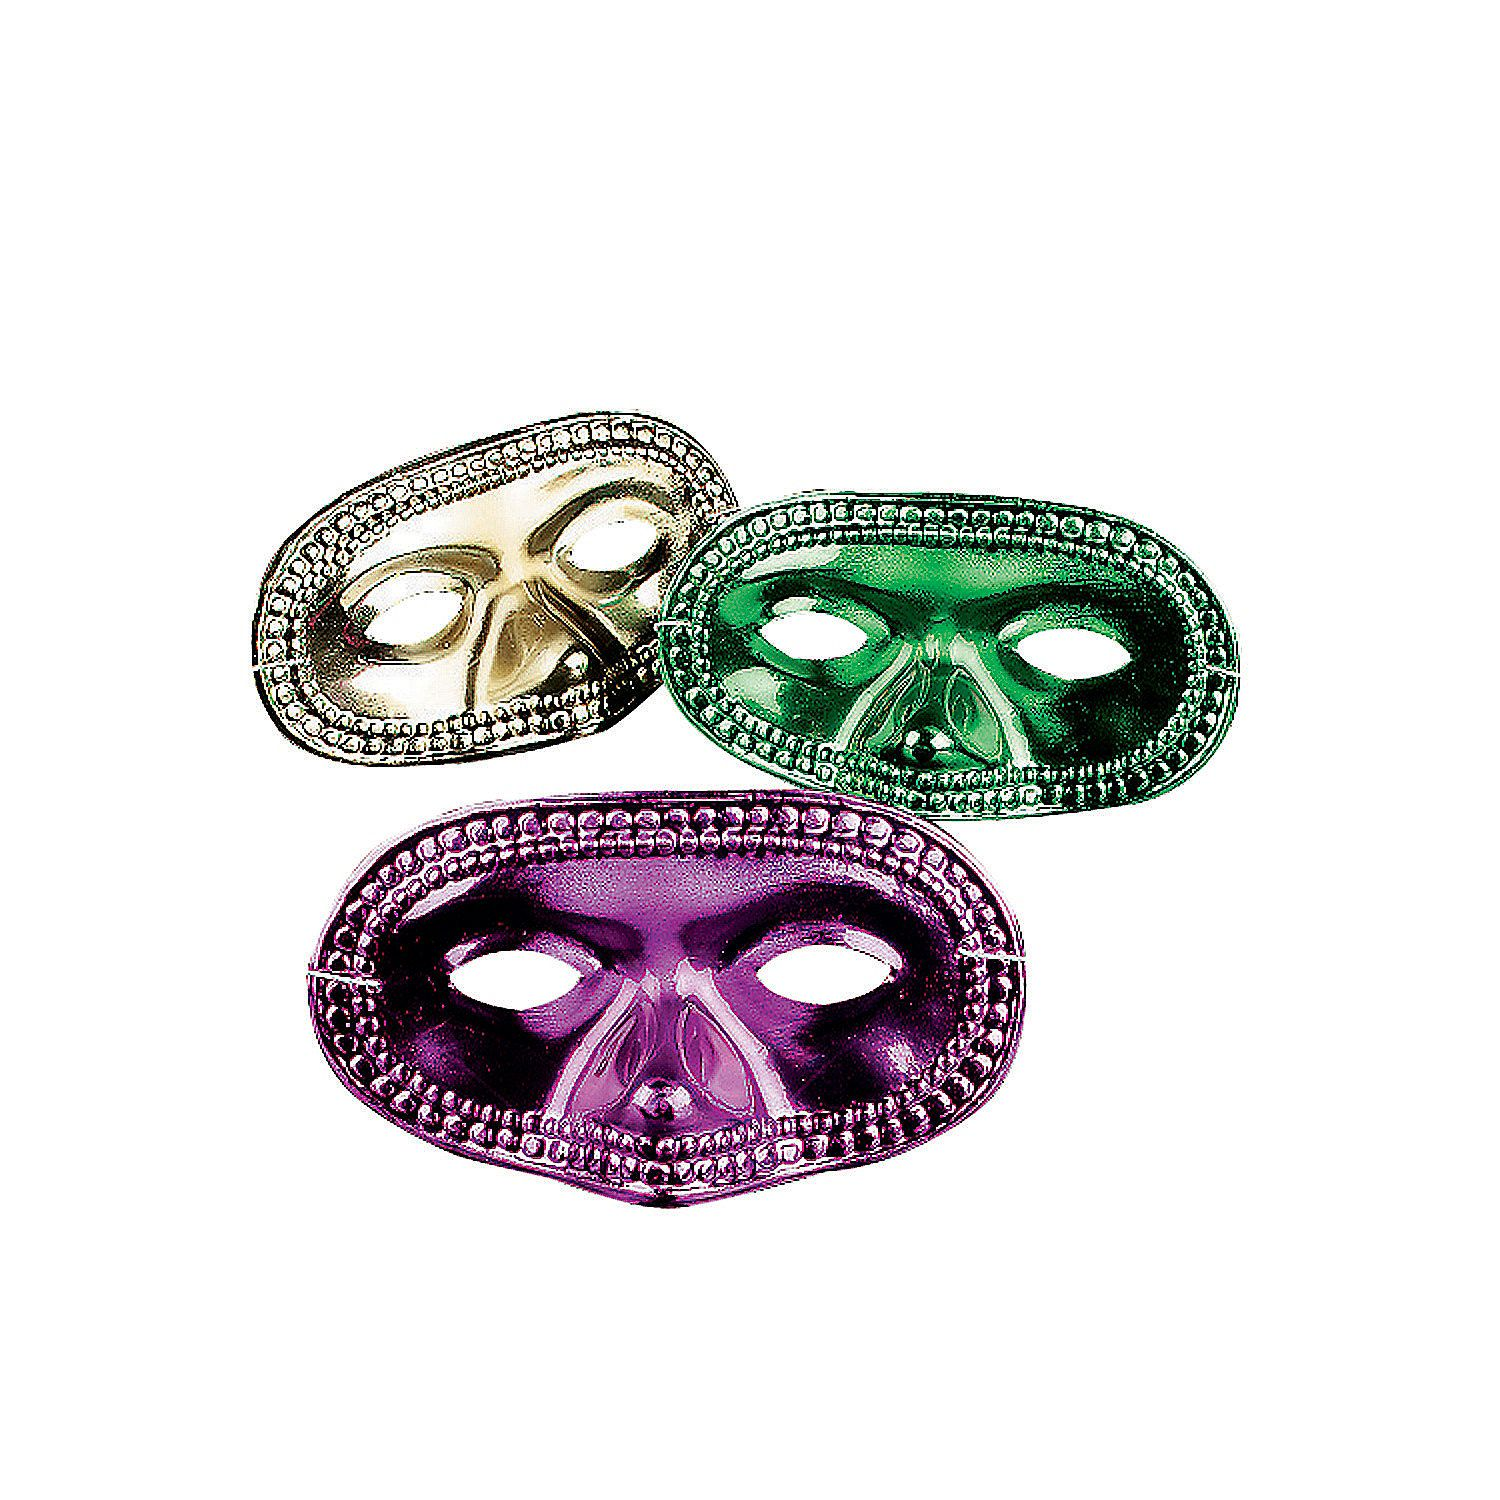 Half Masks To Decorate Endearing Metallic Mardi Gras Half Masks  Orientaltrading Each Camper Design Inspiration